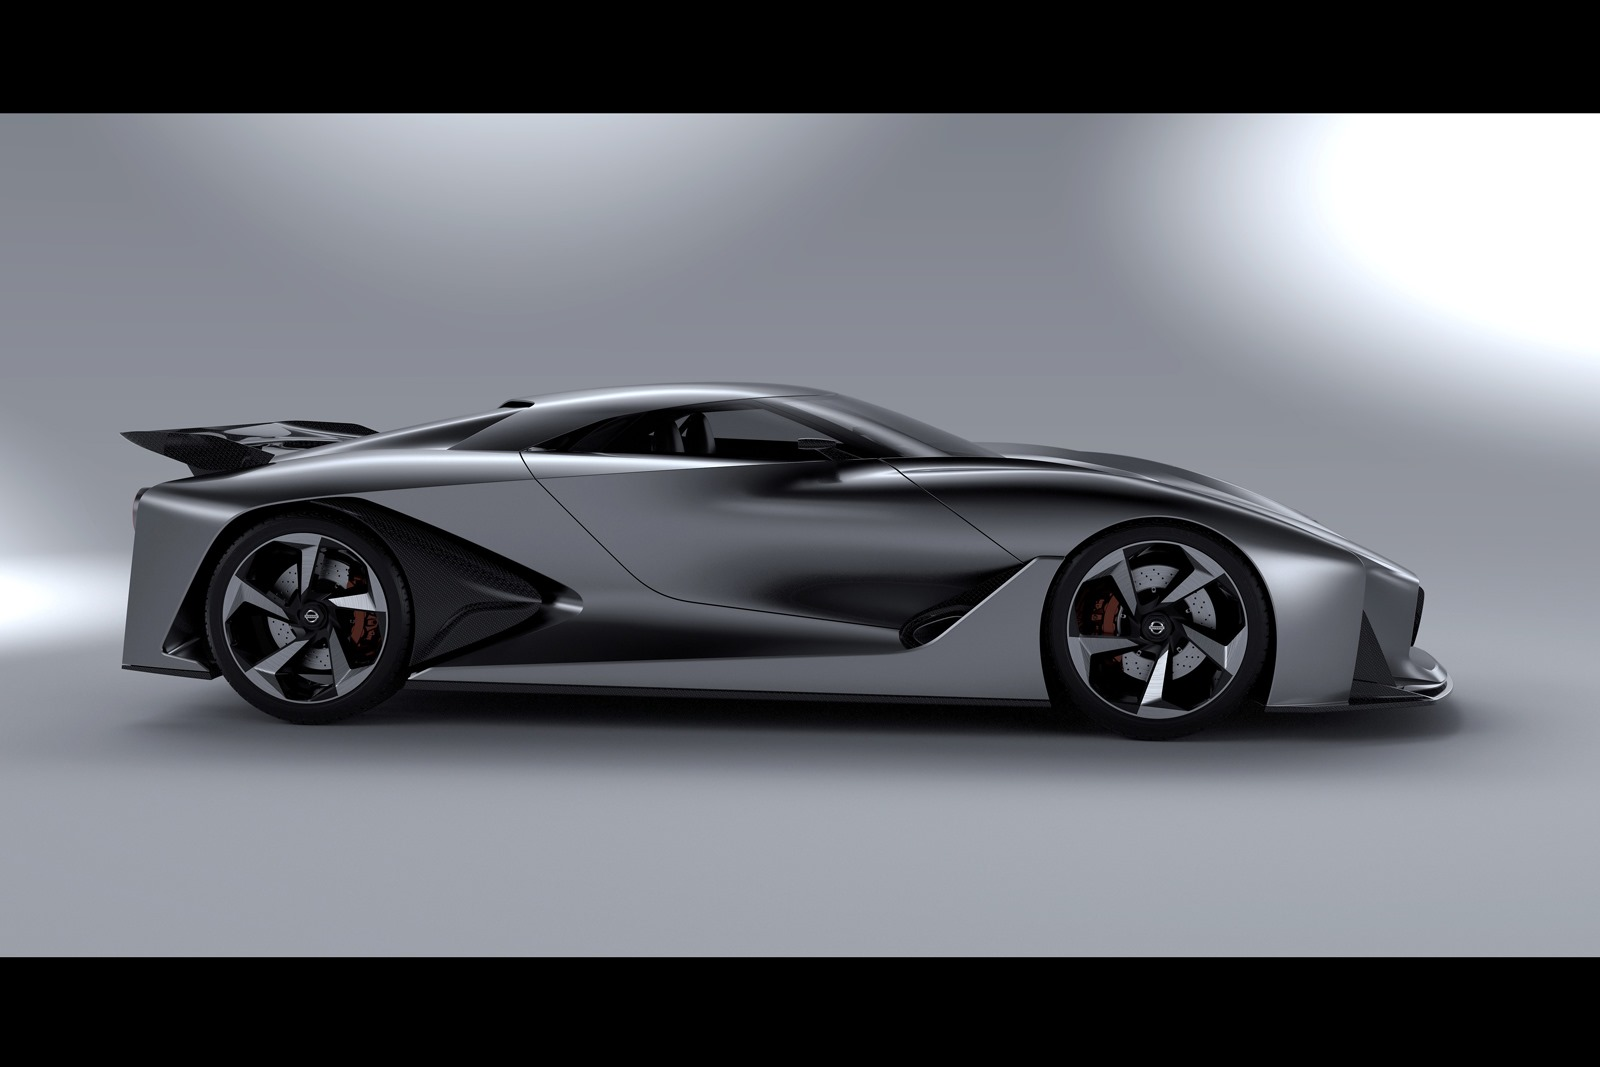 official  nissan concept 2020 vision gran turismo revealed  hints future r36 gt-r